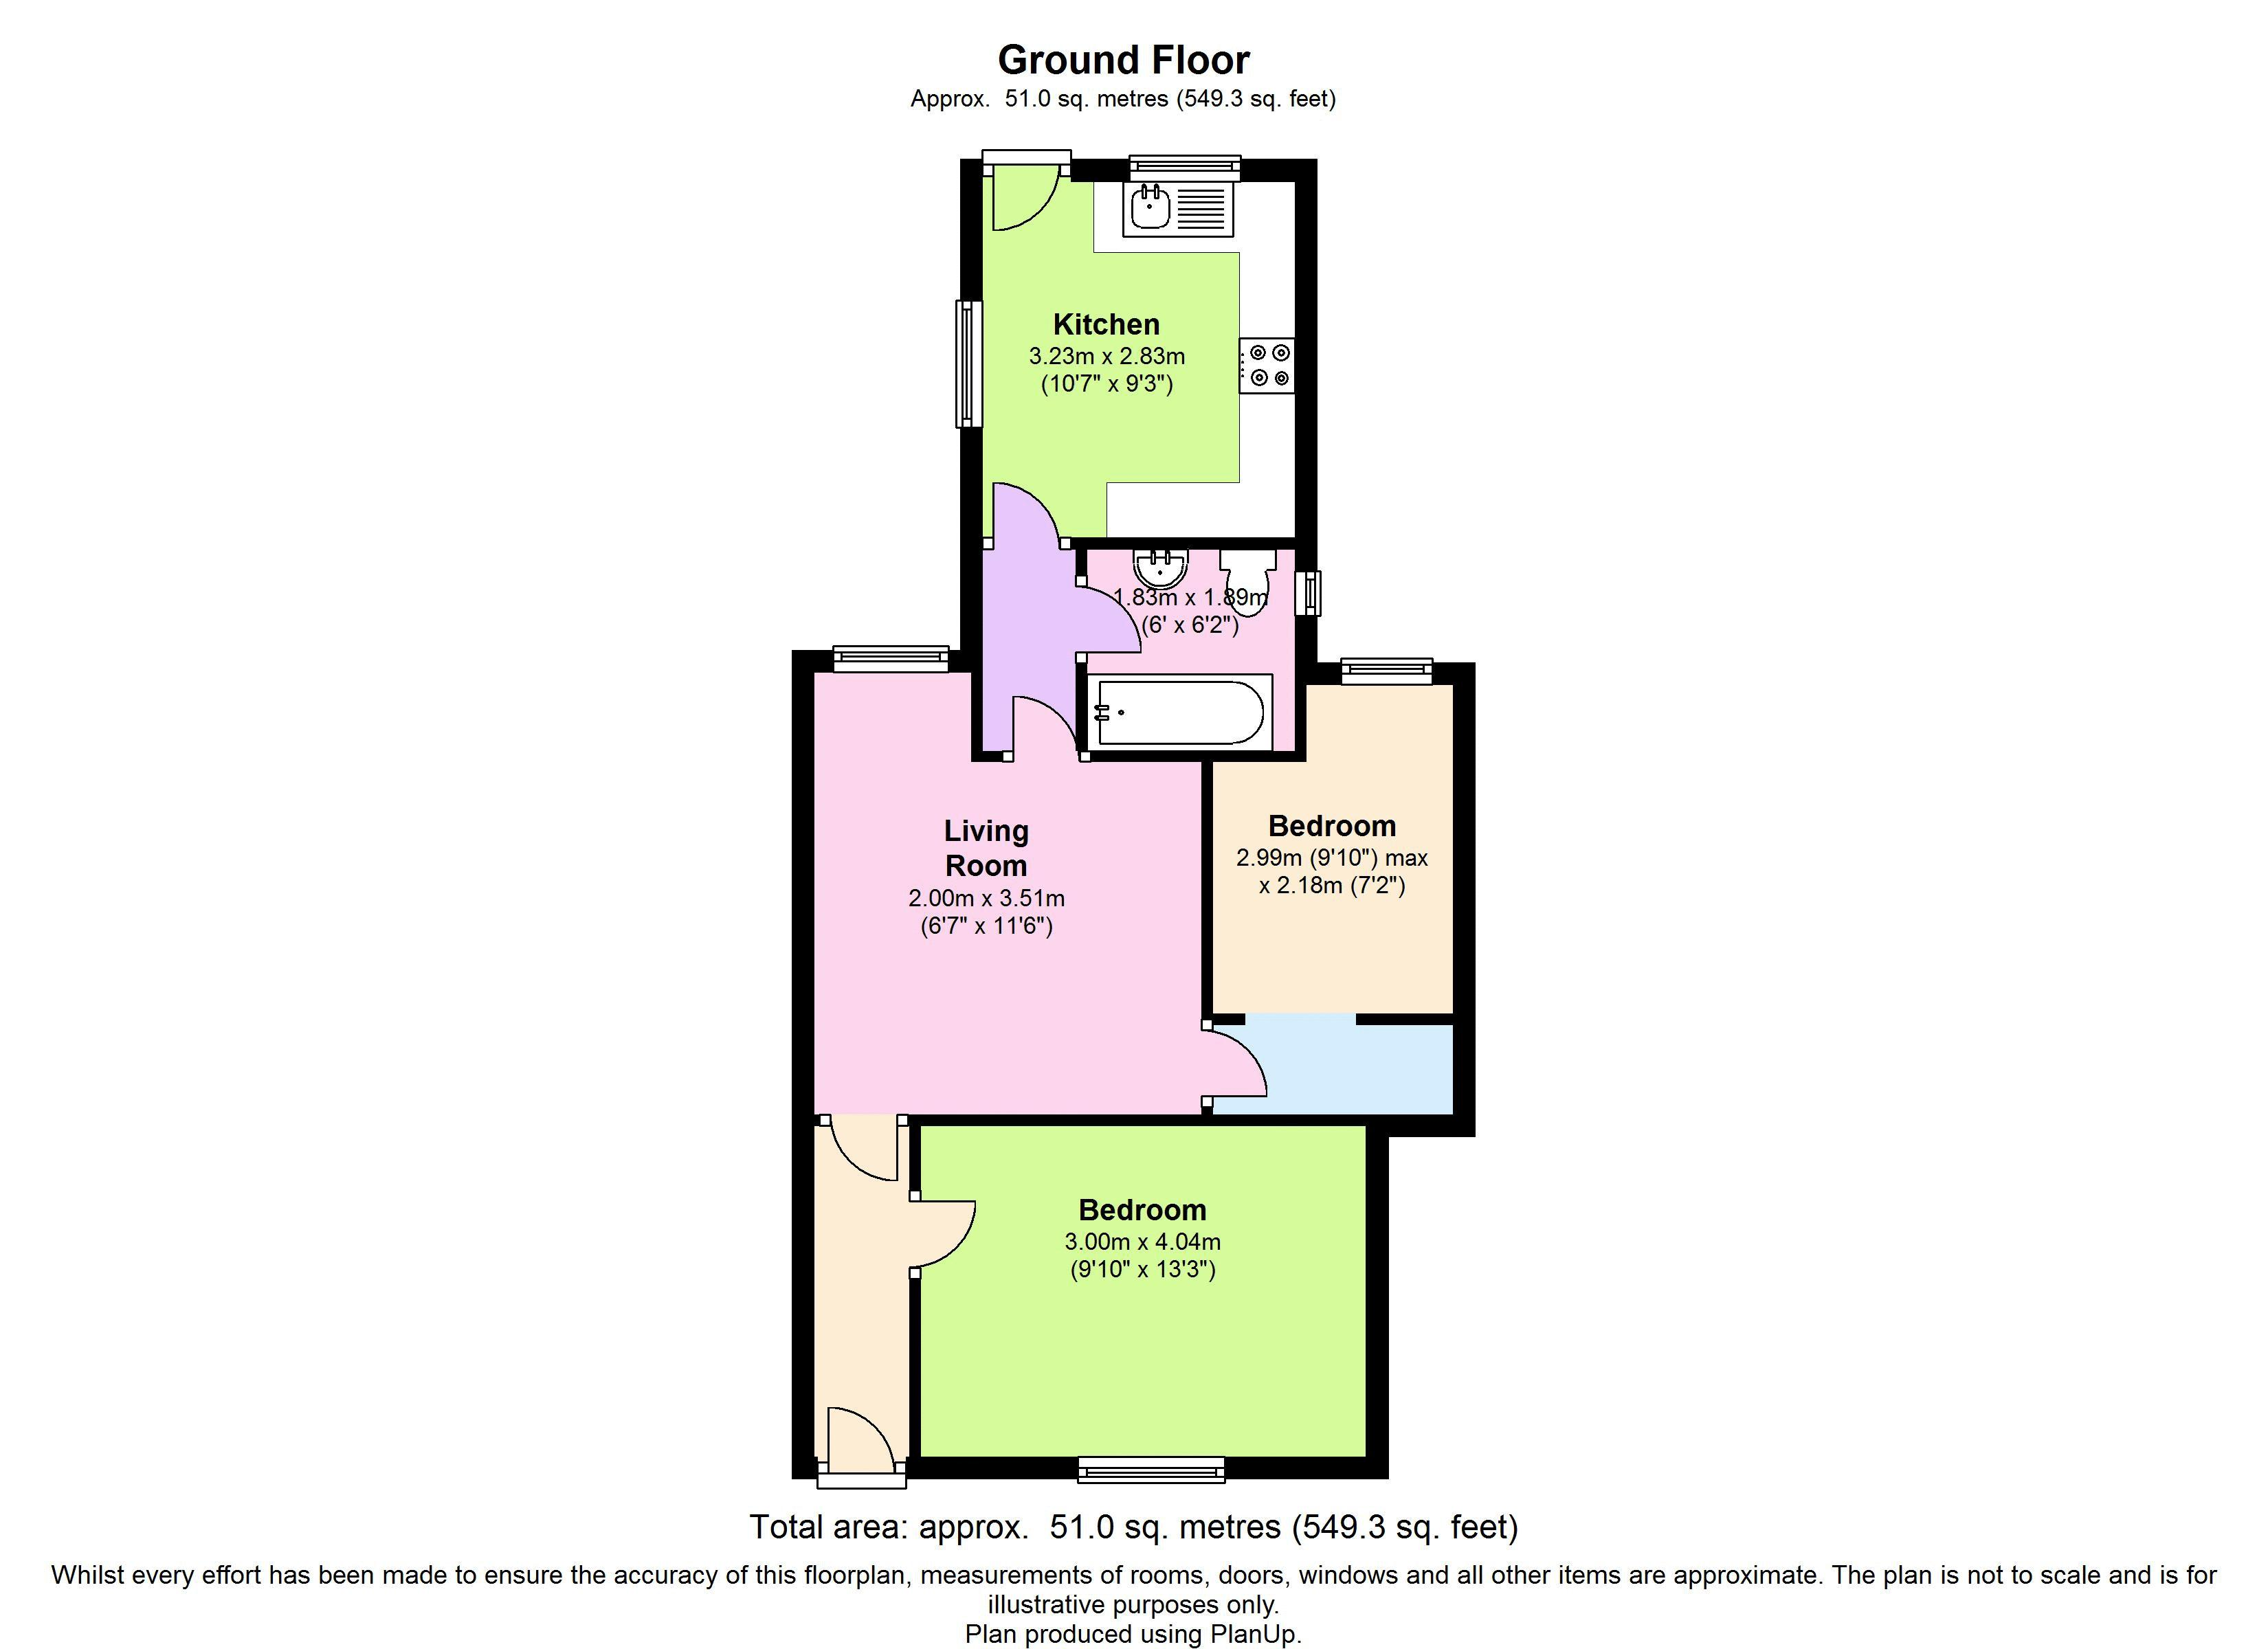 Floor plans for May Cottages, Hollingdean Road, Brighton property for sale in Lewes Road South, Brighton by Coapt